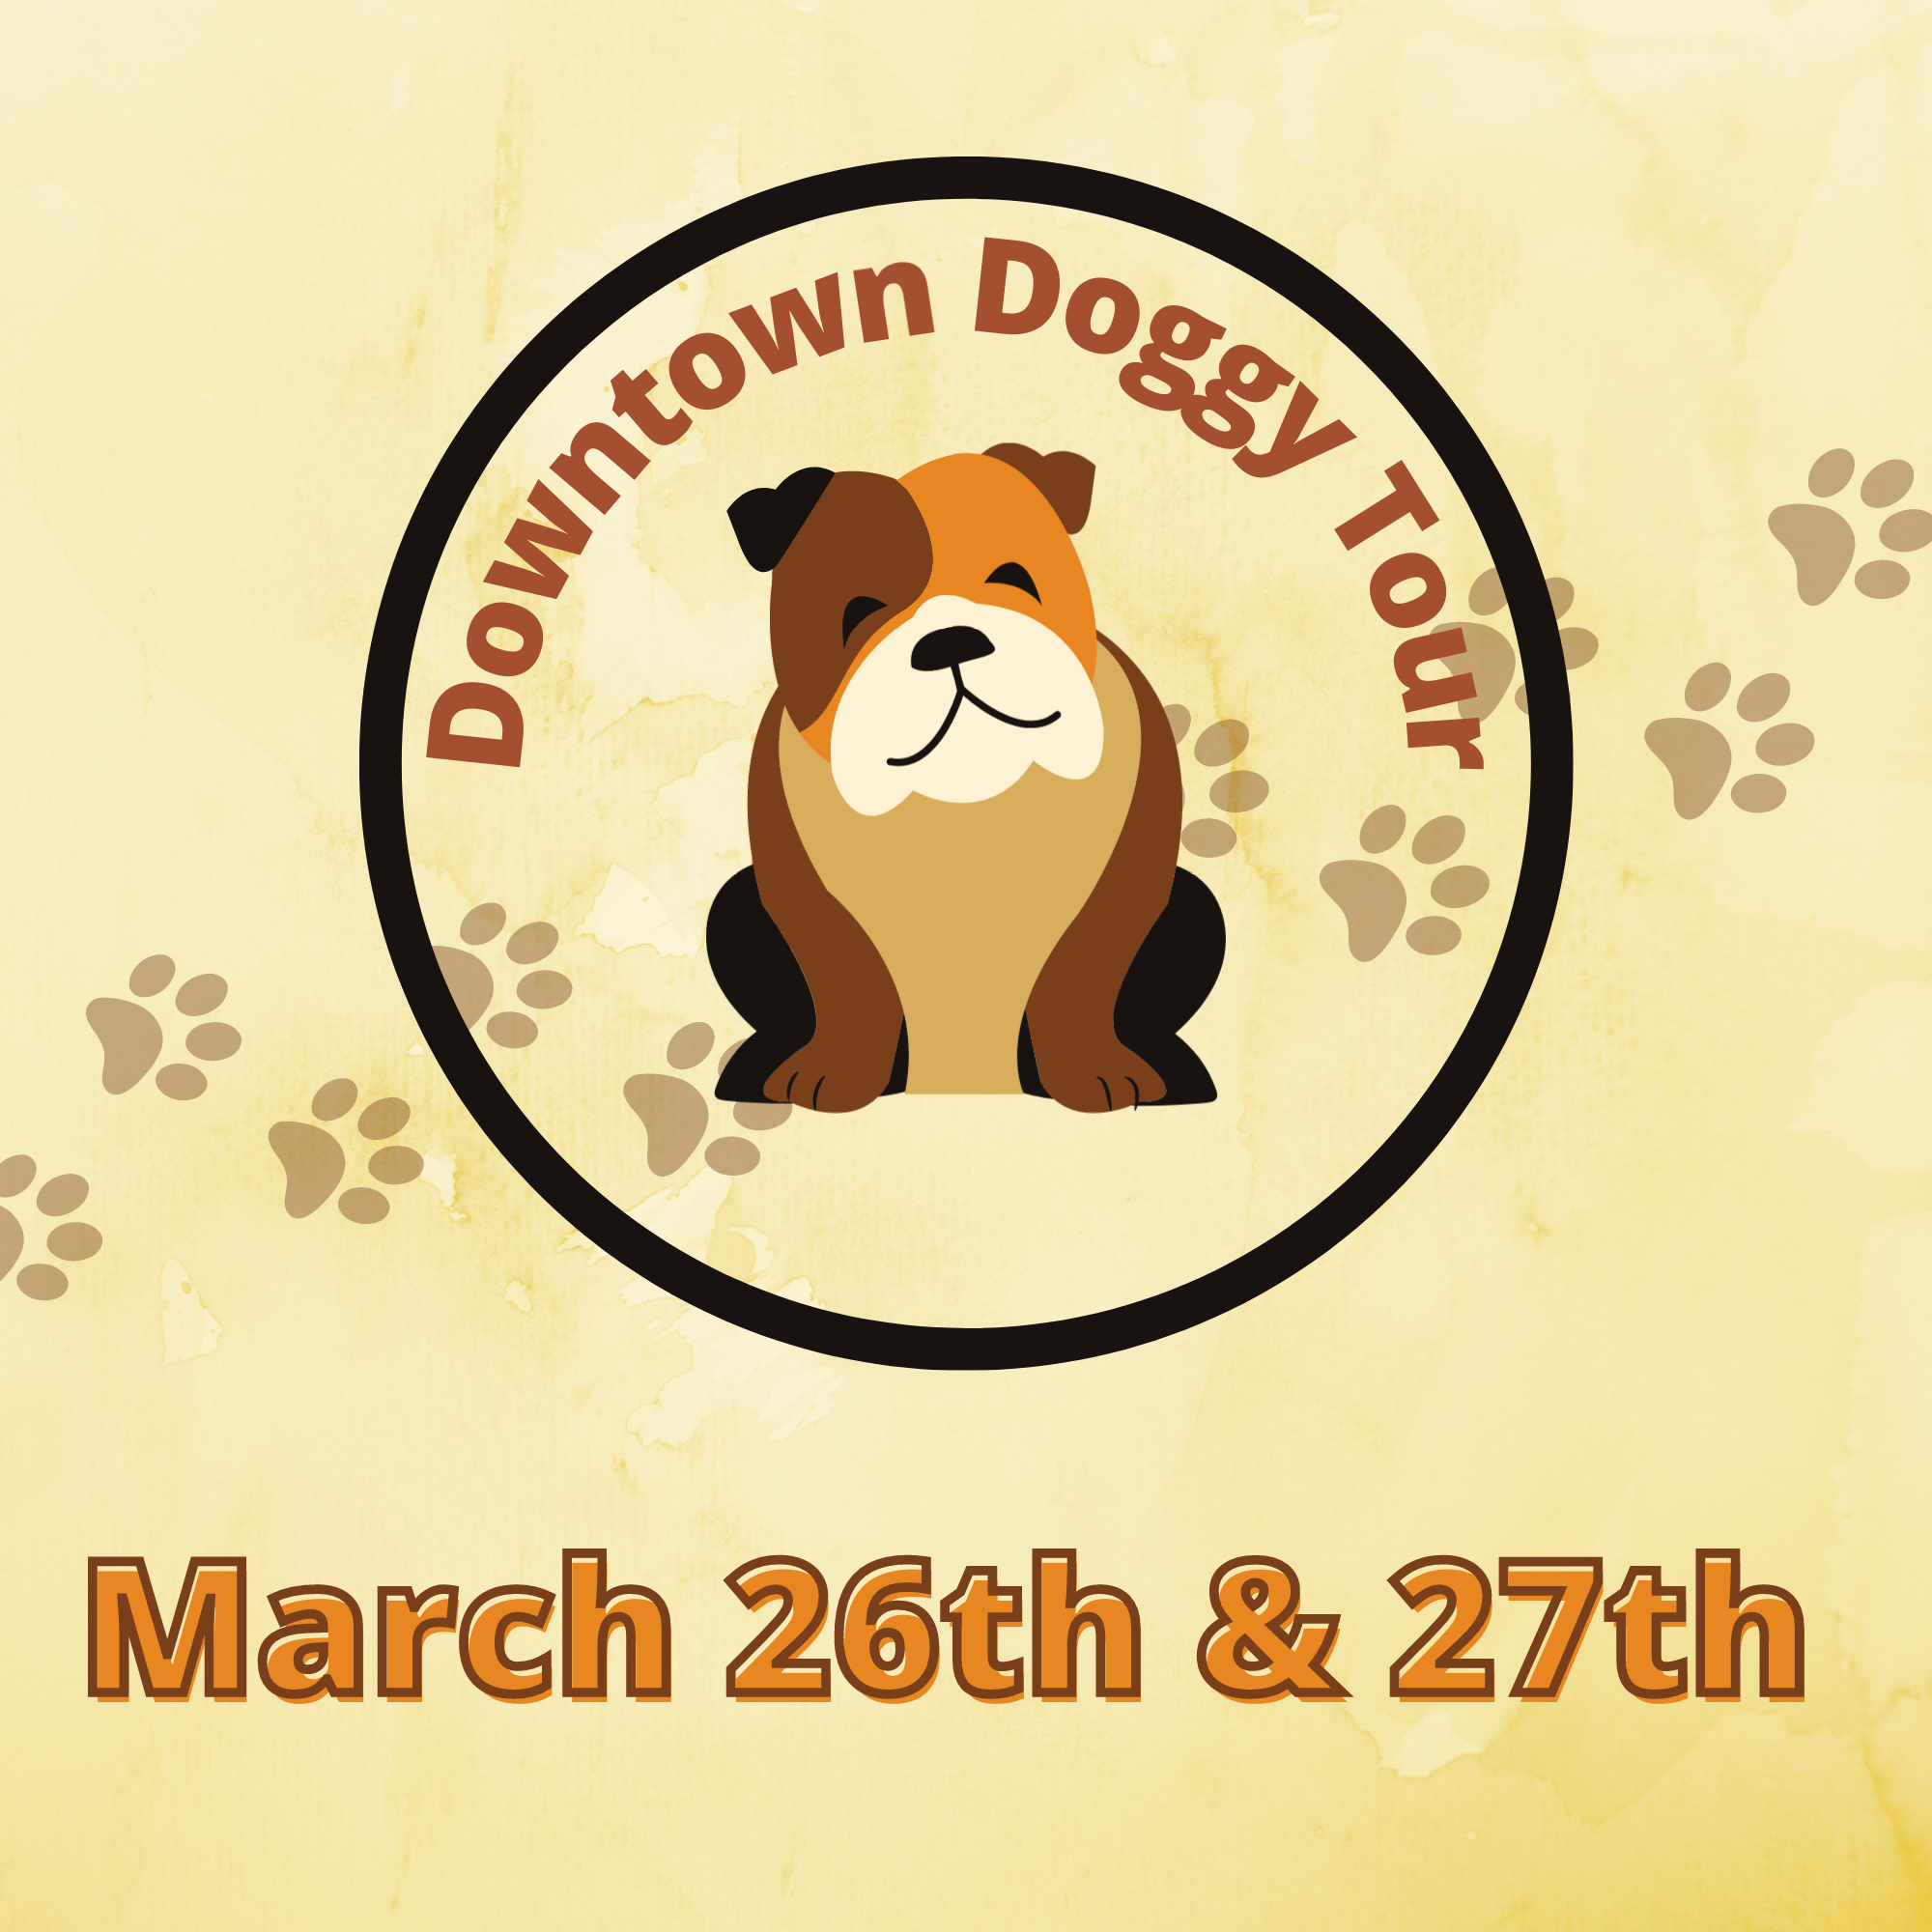 Downtown Tours: Doggy Tours